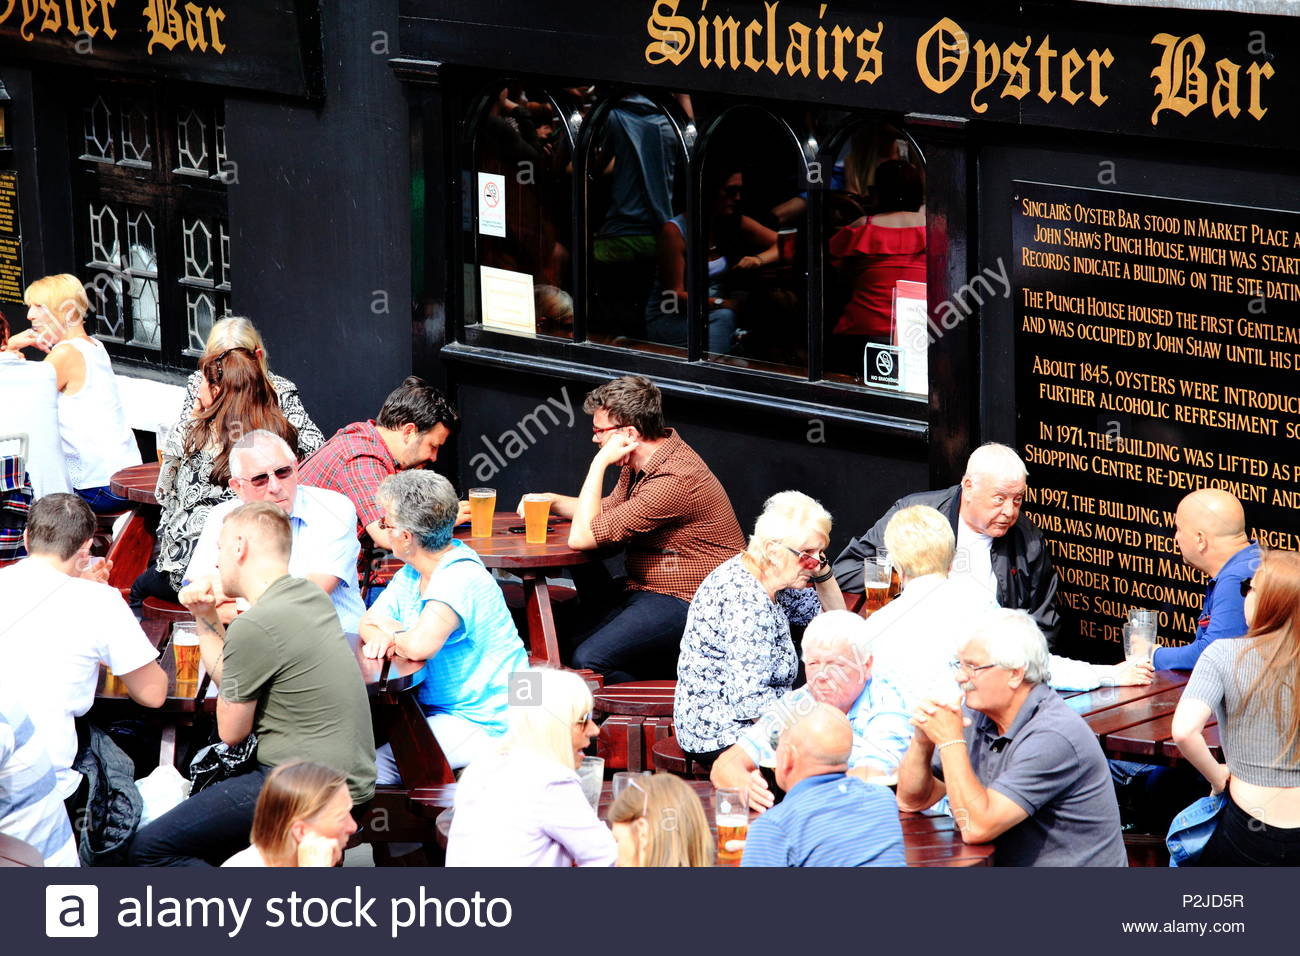 Crowds enjoying an afternoon drink at Sinclairs Oyster Bar at Manchester City Centre, Manchester UK Summer June 2018 - Stock Image